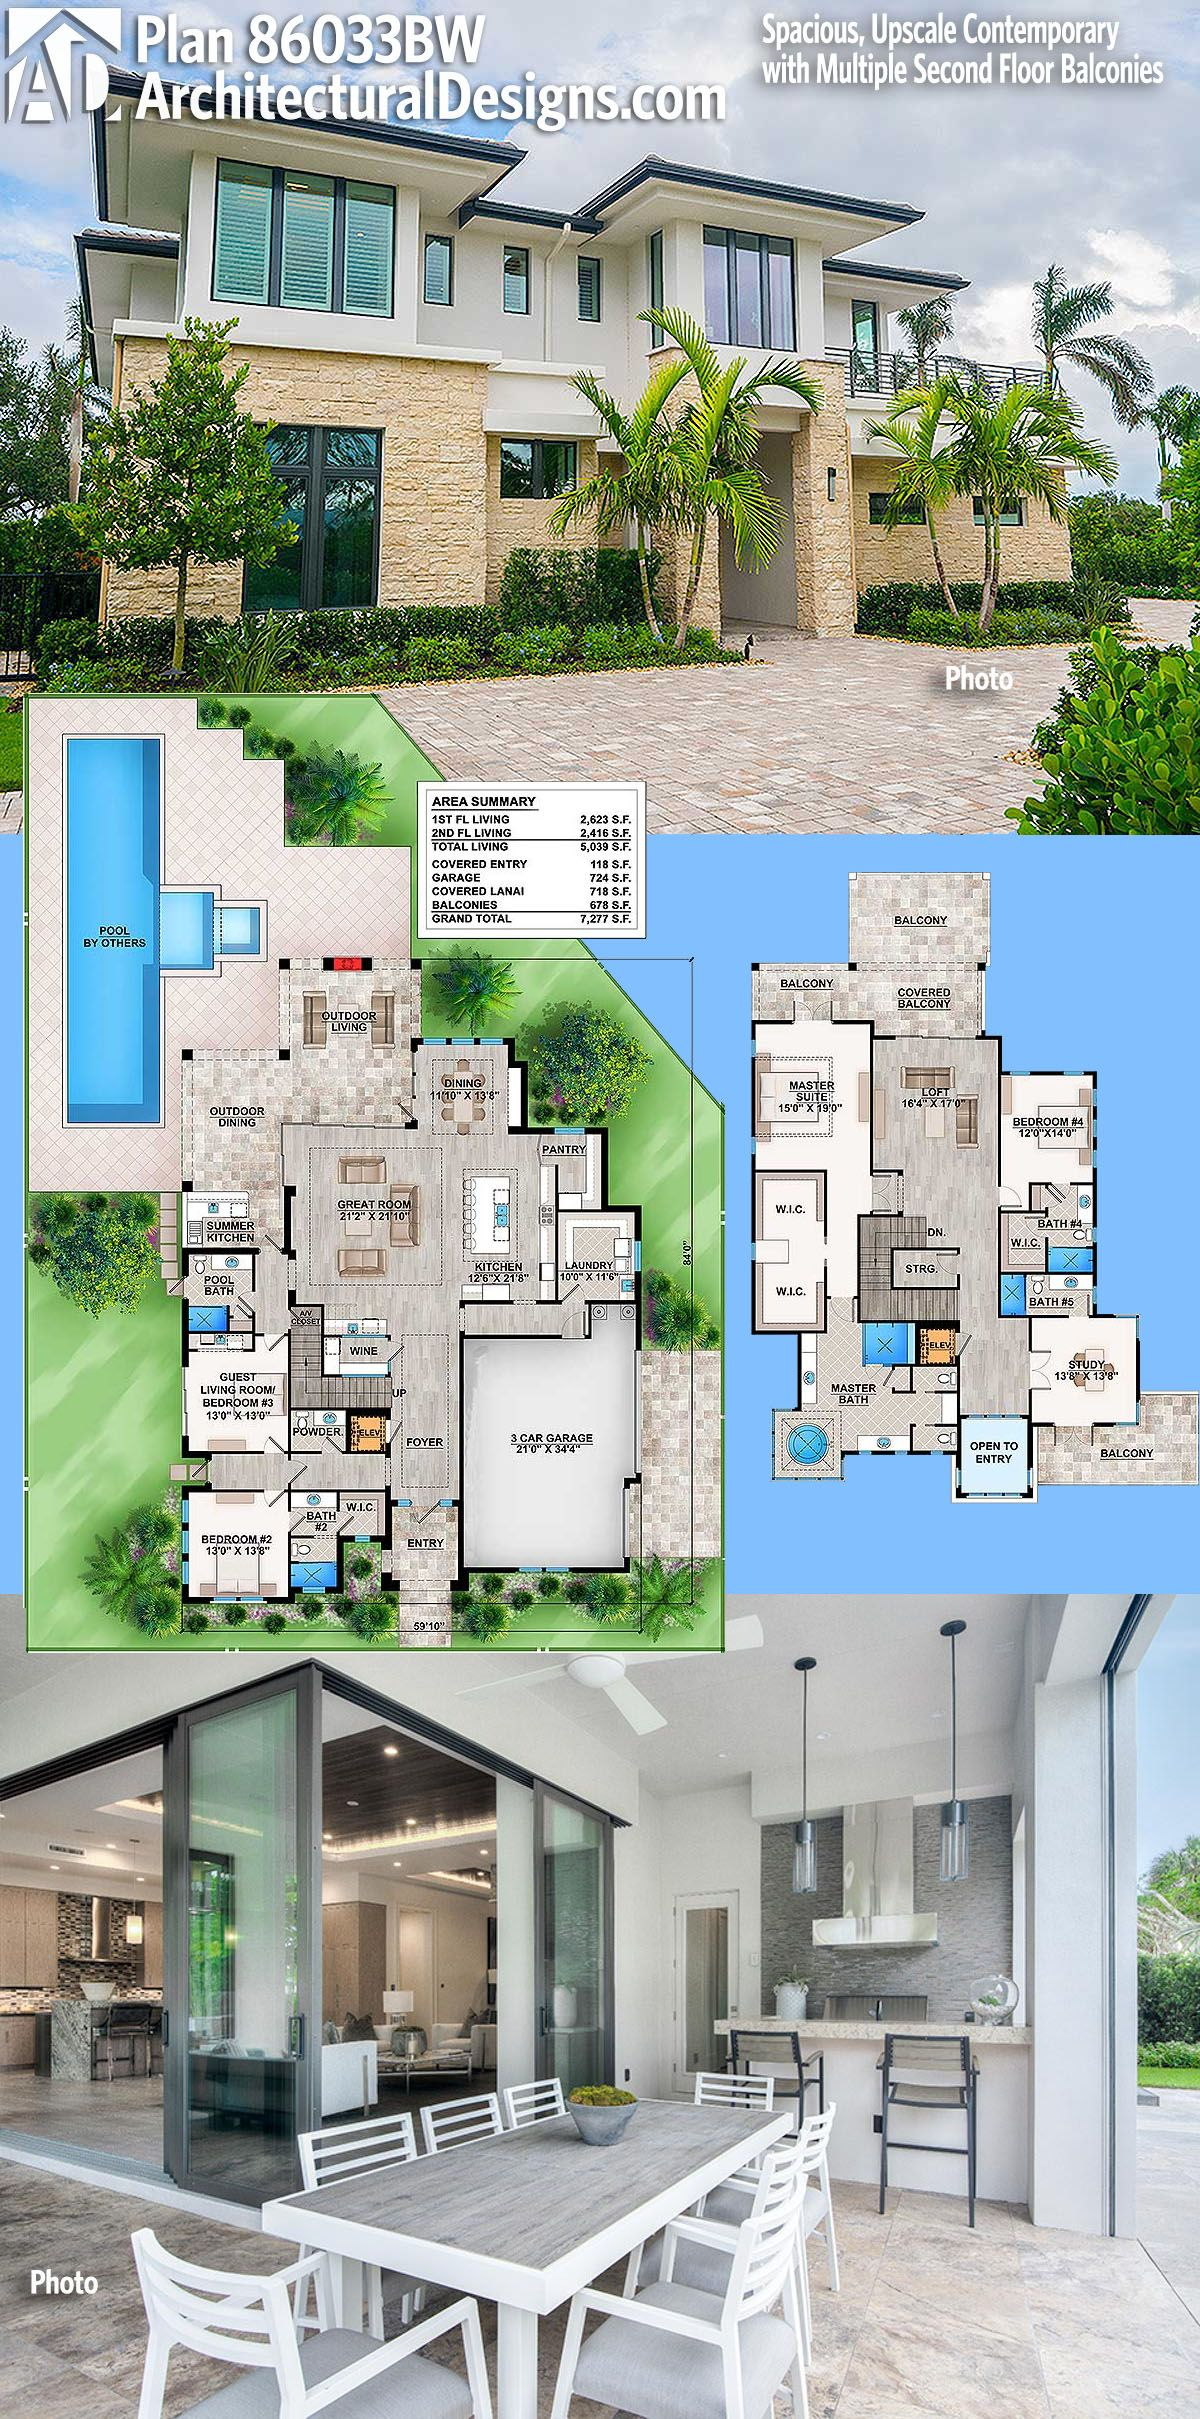 Plan 86033BW Spacious Upscale Contemporary with Multiple